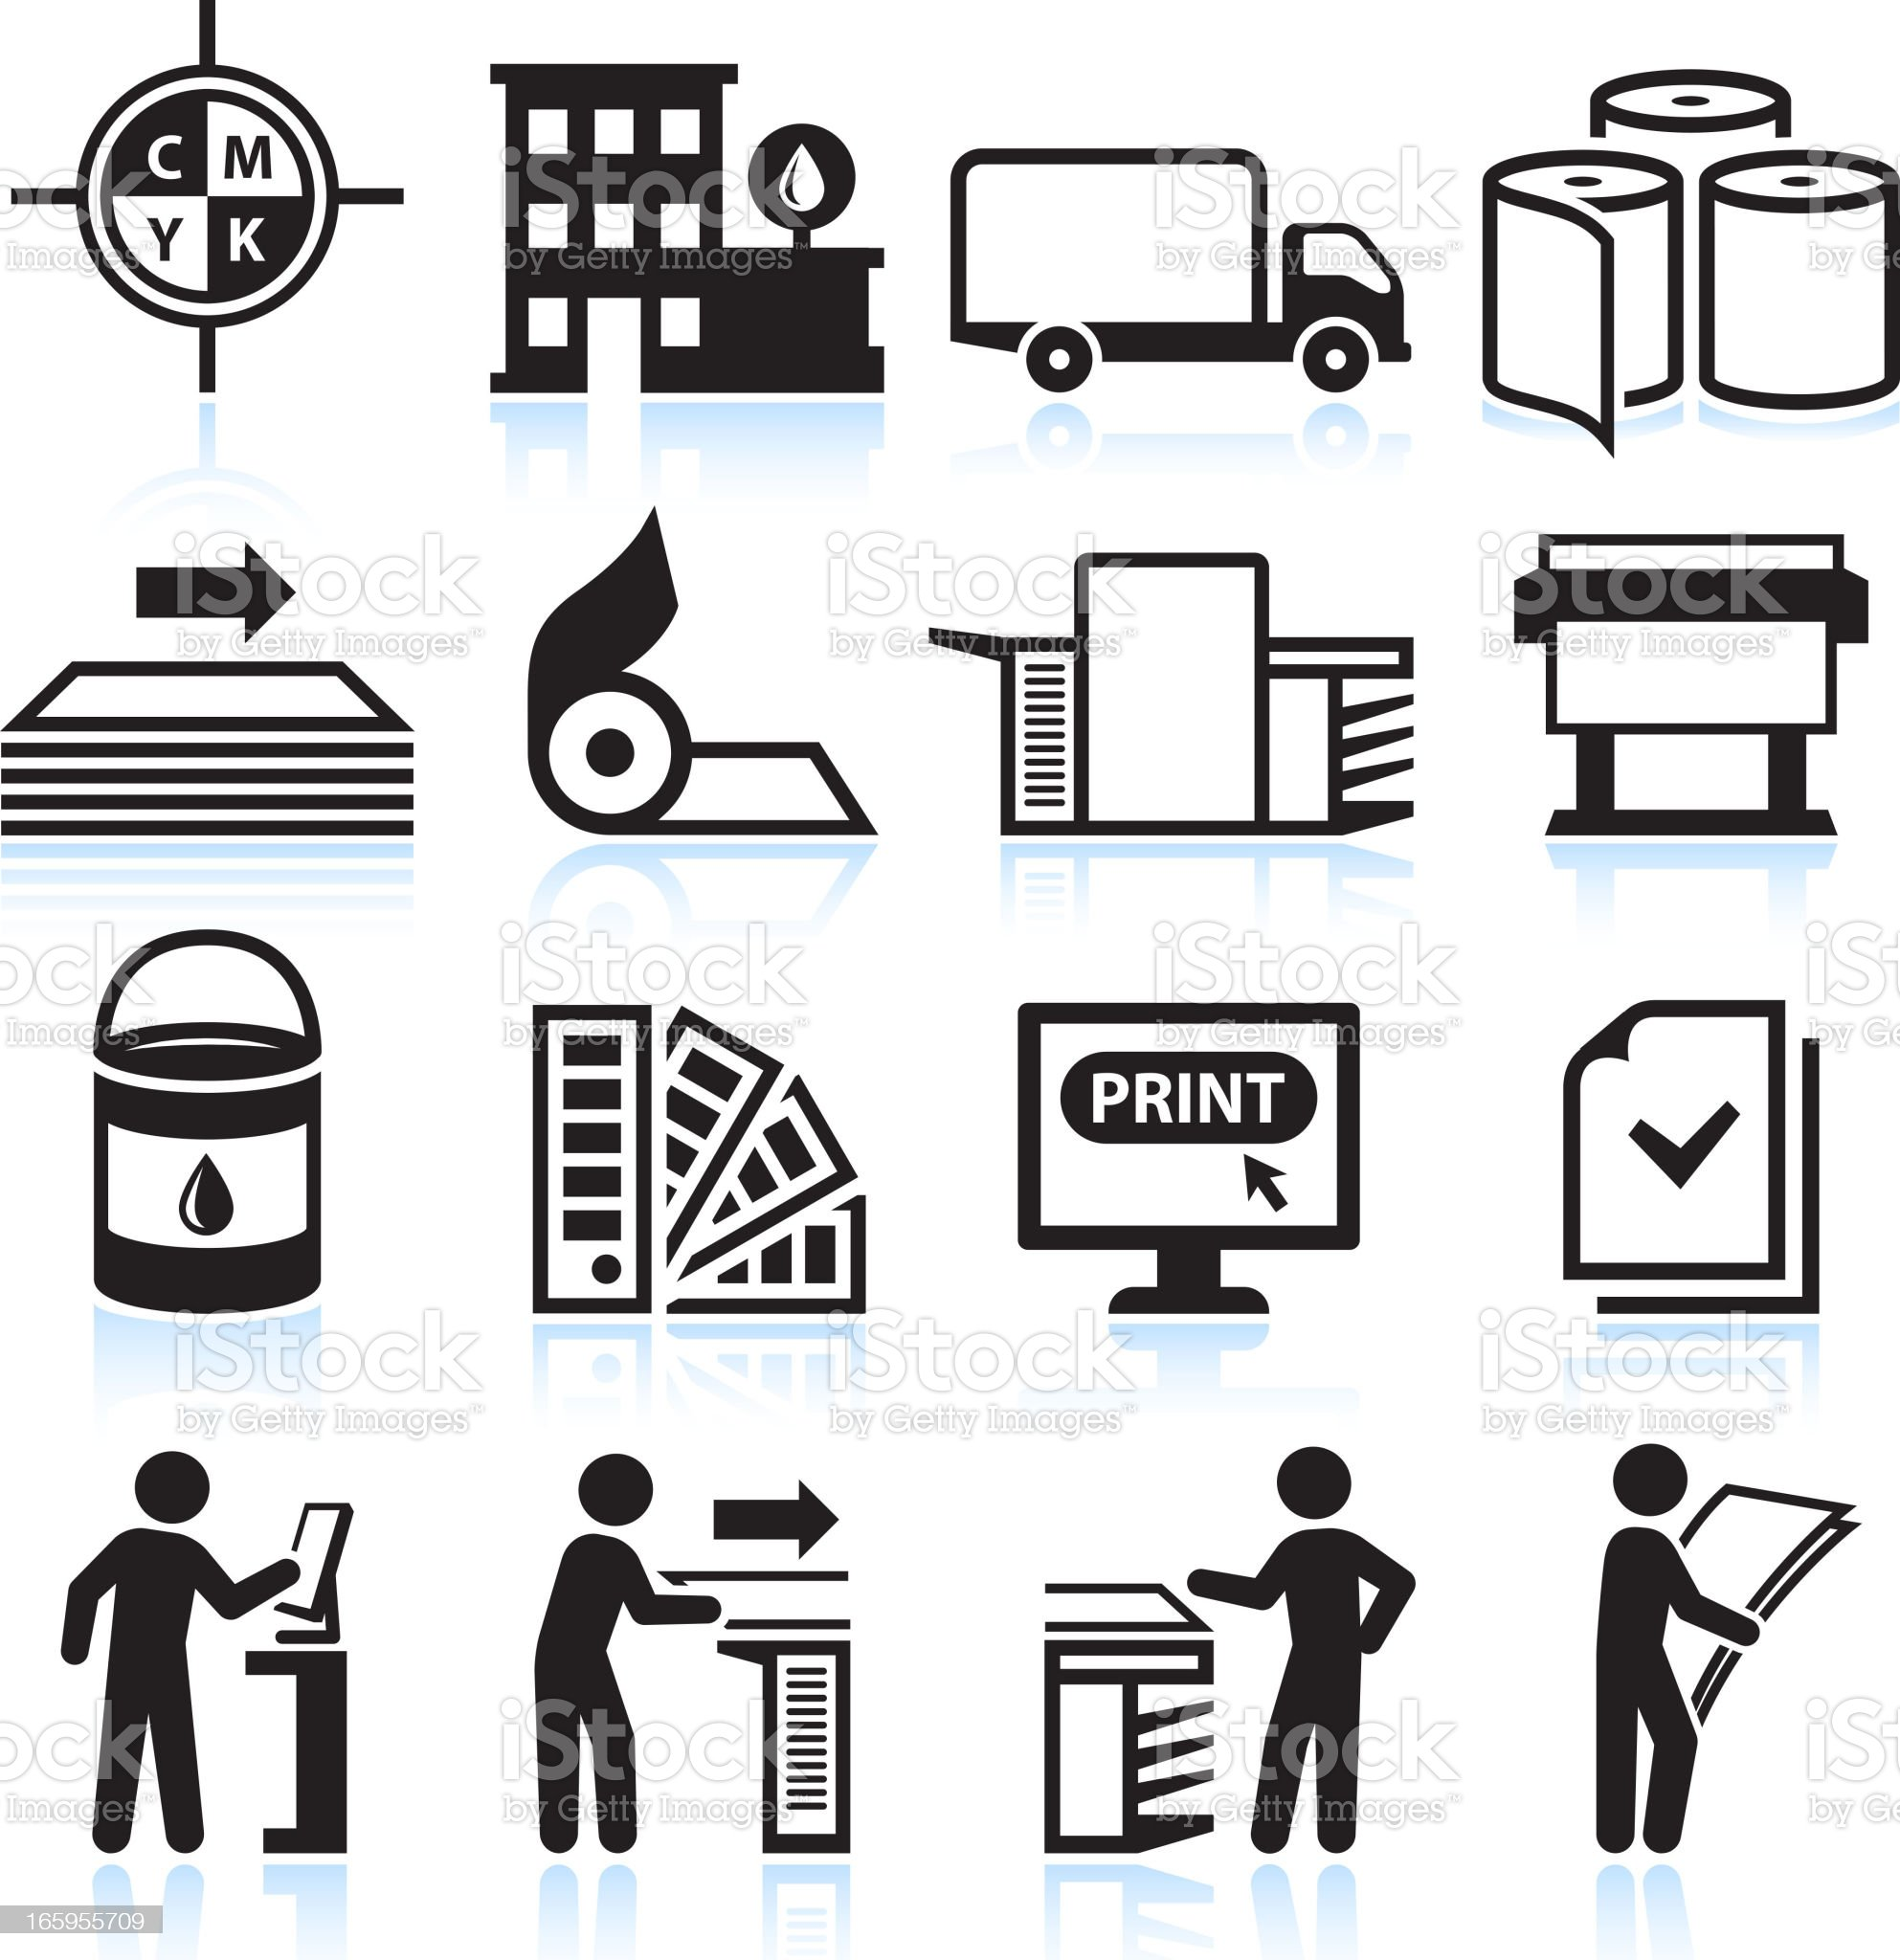 Printing and Publishing Industry black & white vector icon set royalty-free stock vector art